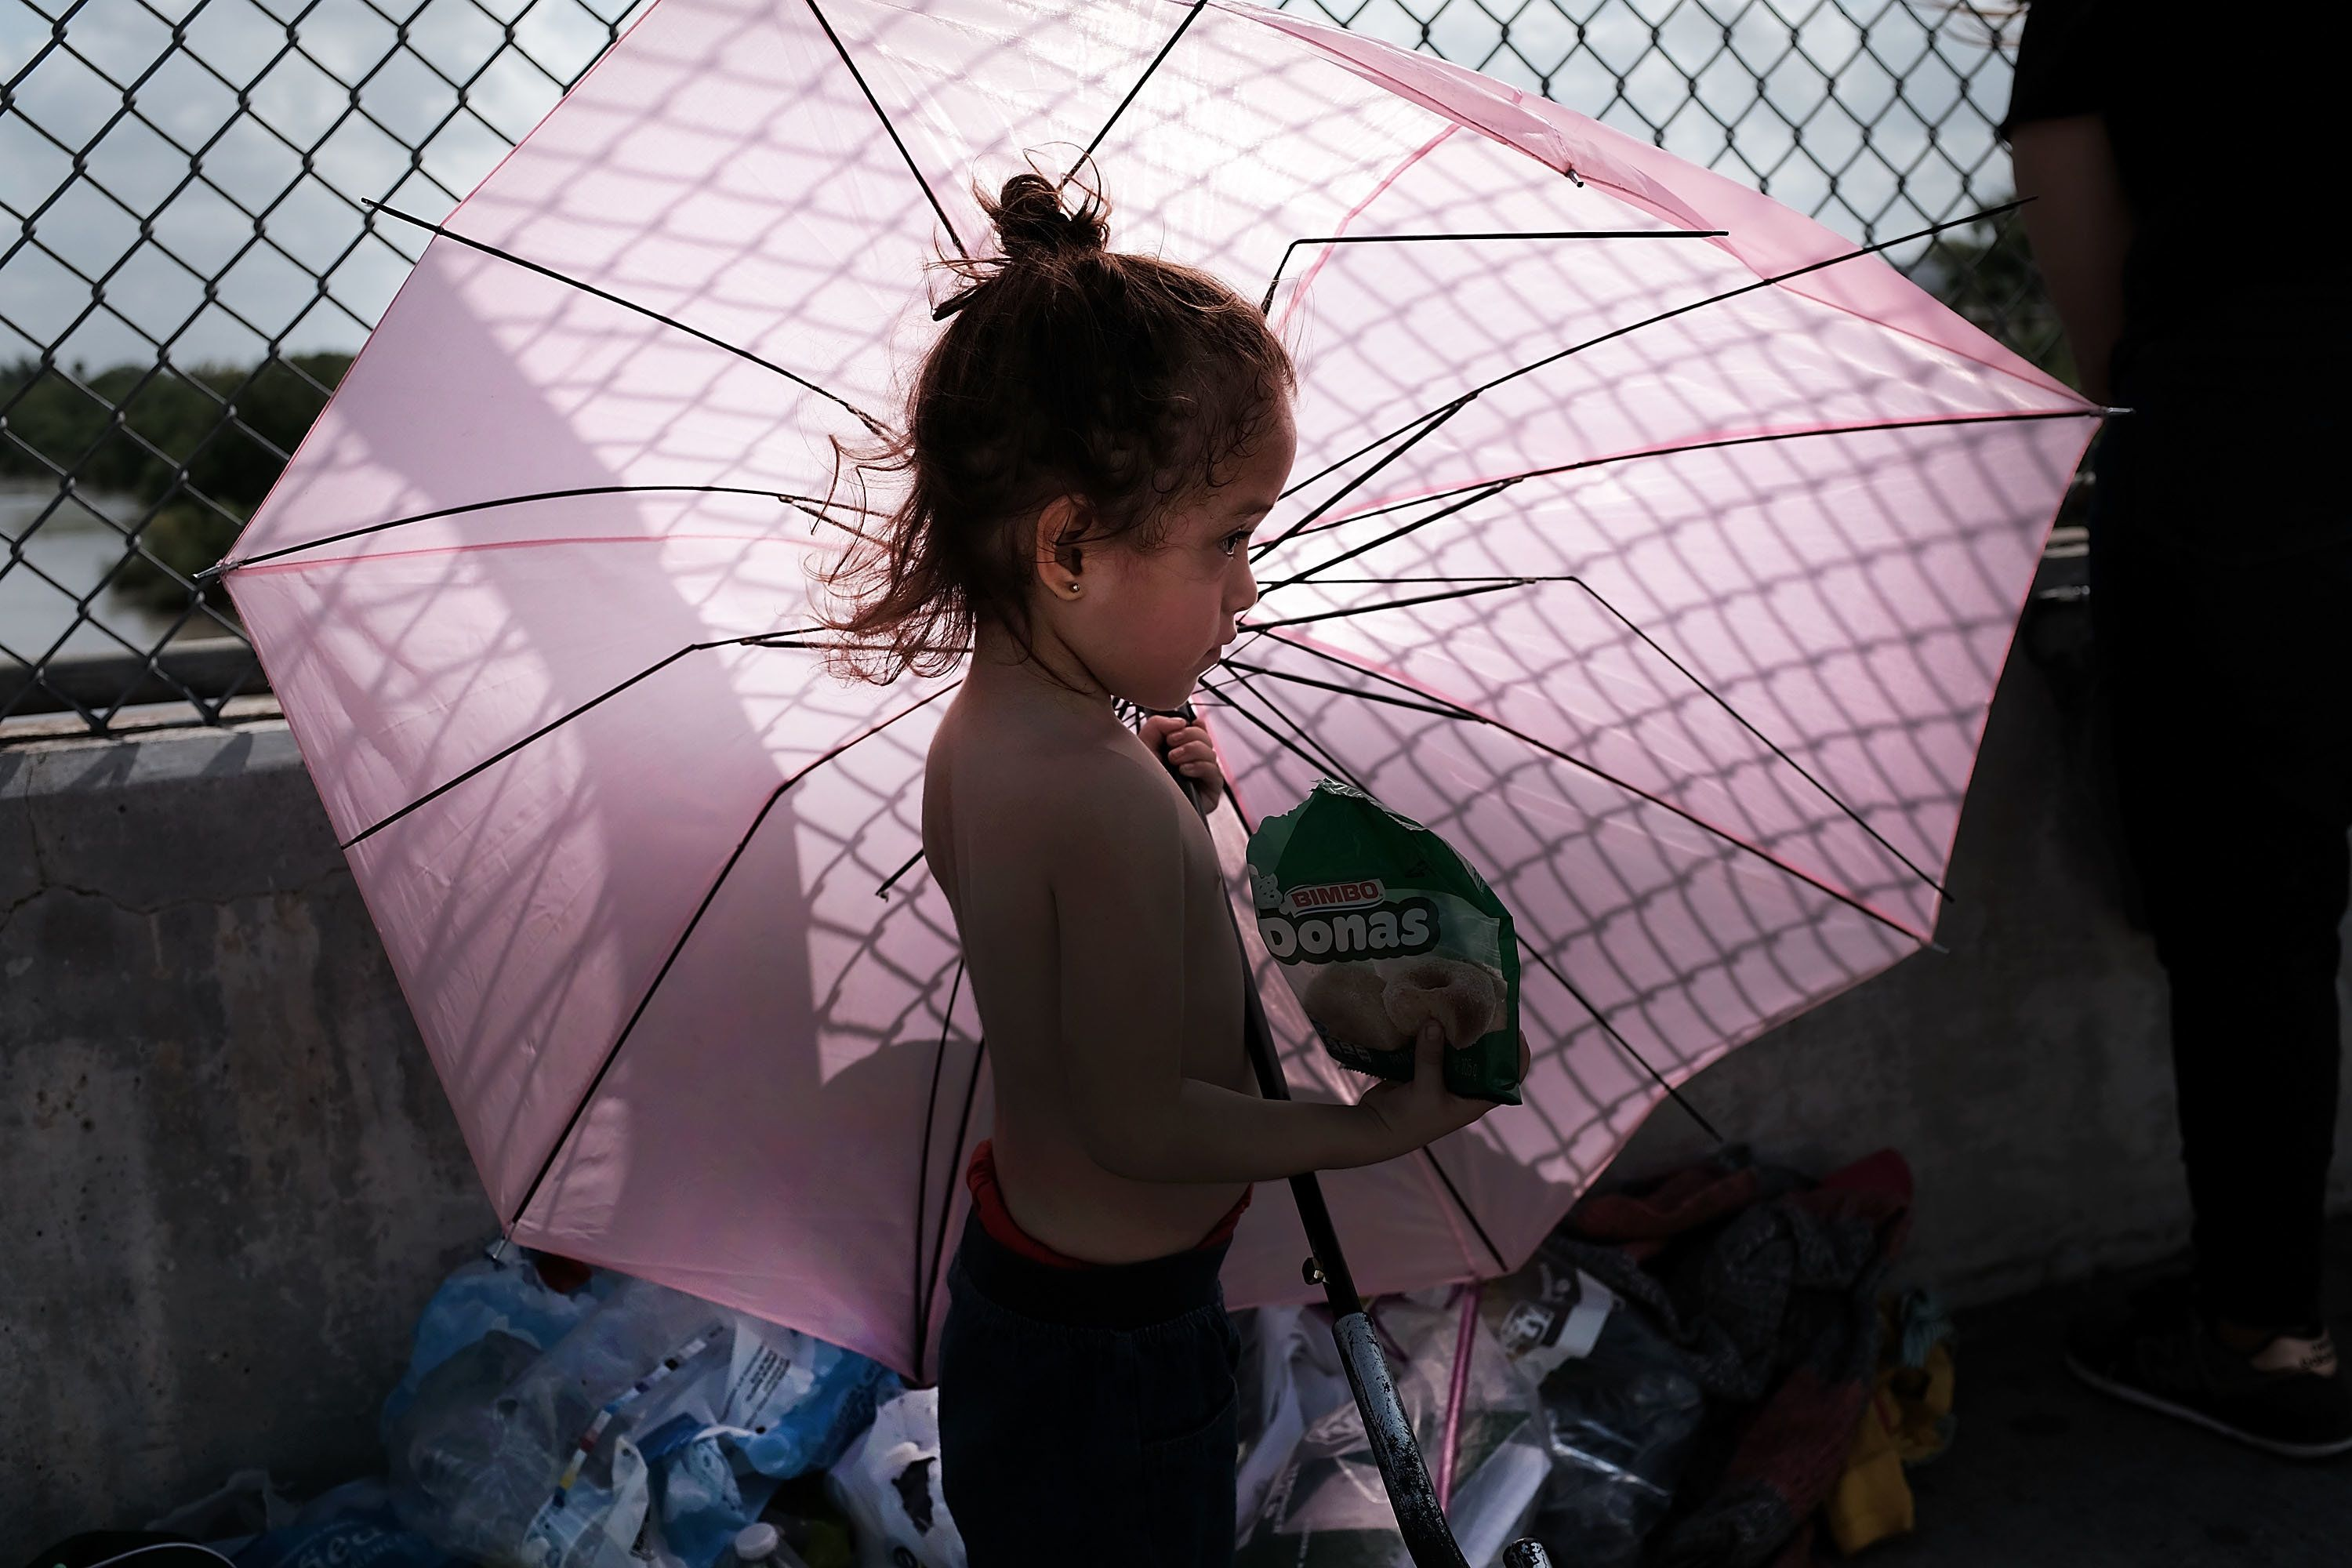 BROWNSVILLE, TX - JUNE 25:  A Honduran child stands in the shade of an umbrella as she waits with her mother along the border bridge after being denied entry from Mexico into the U.S. on June 25, 2018 in Brownsville, Texas. Immigration has once again been put in the spotlight as Democrats and Republicans spar over the detention of children and families seeking asylum at the border. Before President Donald Trump signed an executive order last week that halts the practice of separating families who are seeking asylum, more than 2,300 immigrant children had been separated from their parents in the zero-tolerance policy for border crossers.  (Photo by Spencer Platt/Getty Images)